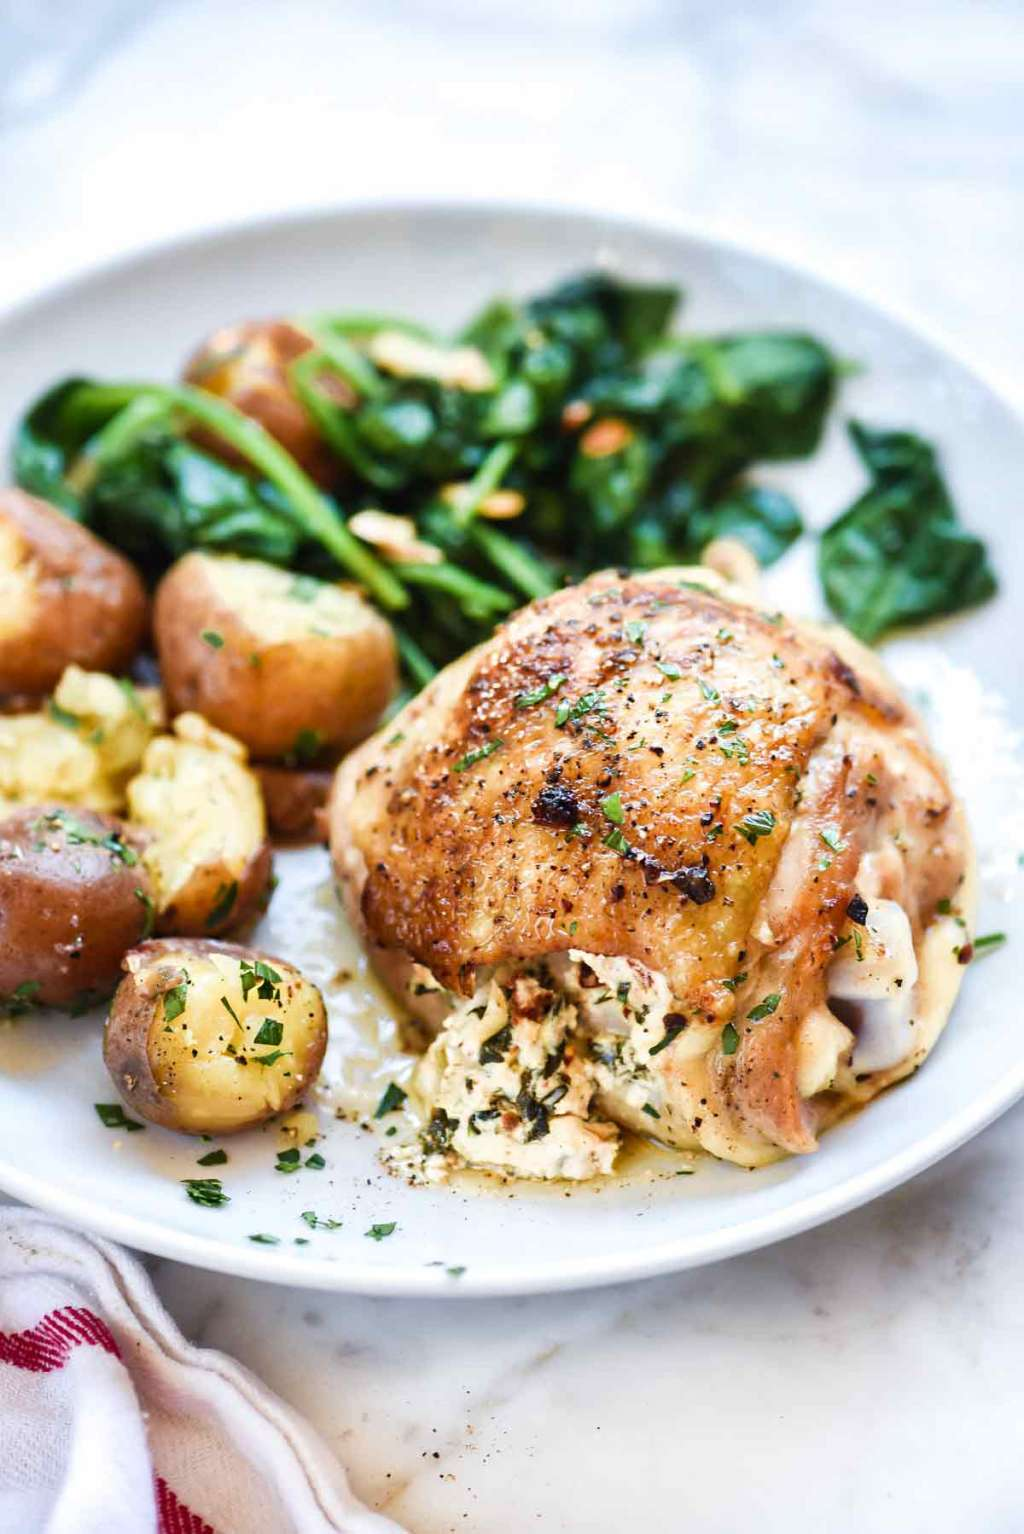 These Spinach & Artichoke Stuffed Chicken Thighs Are Amazing